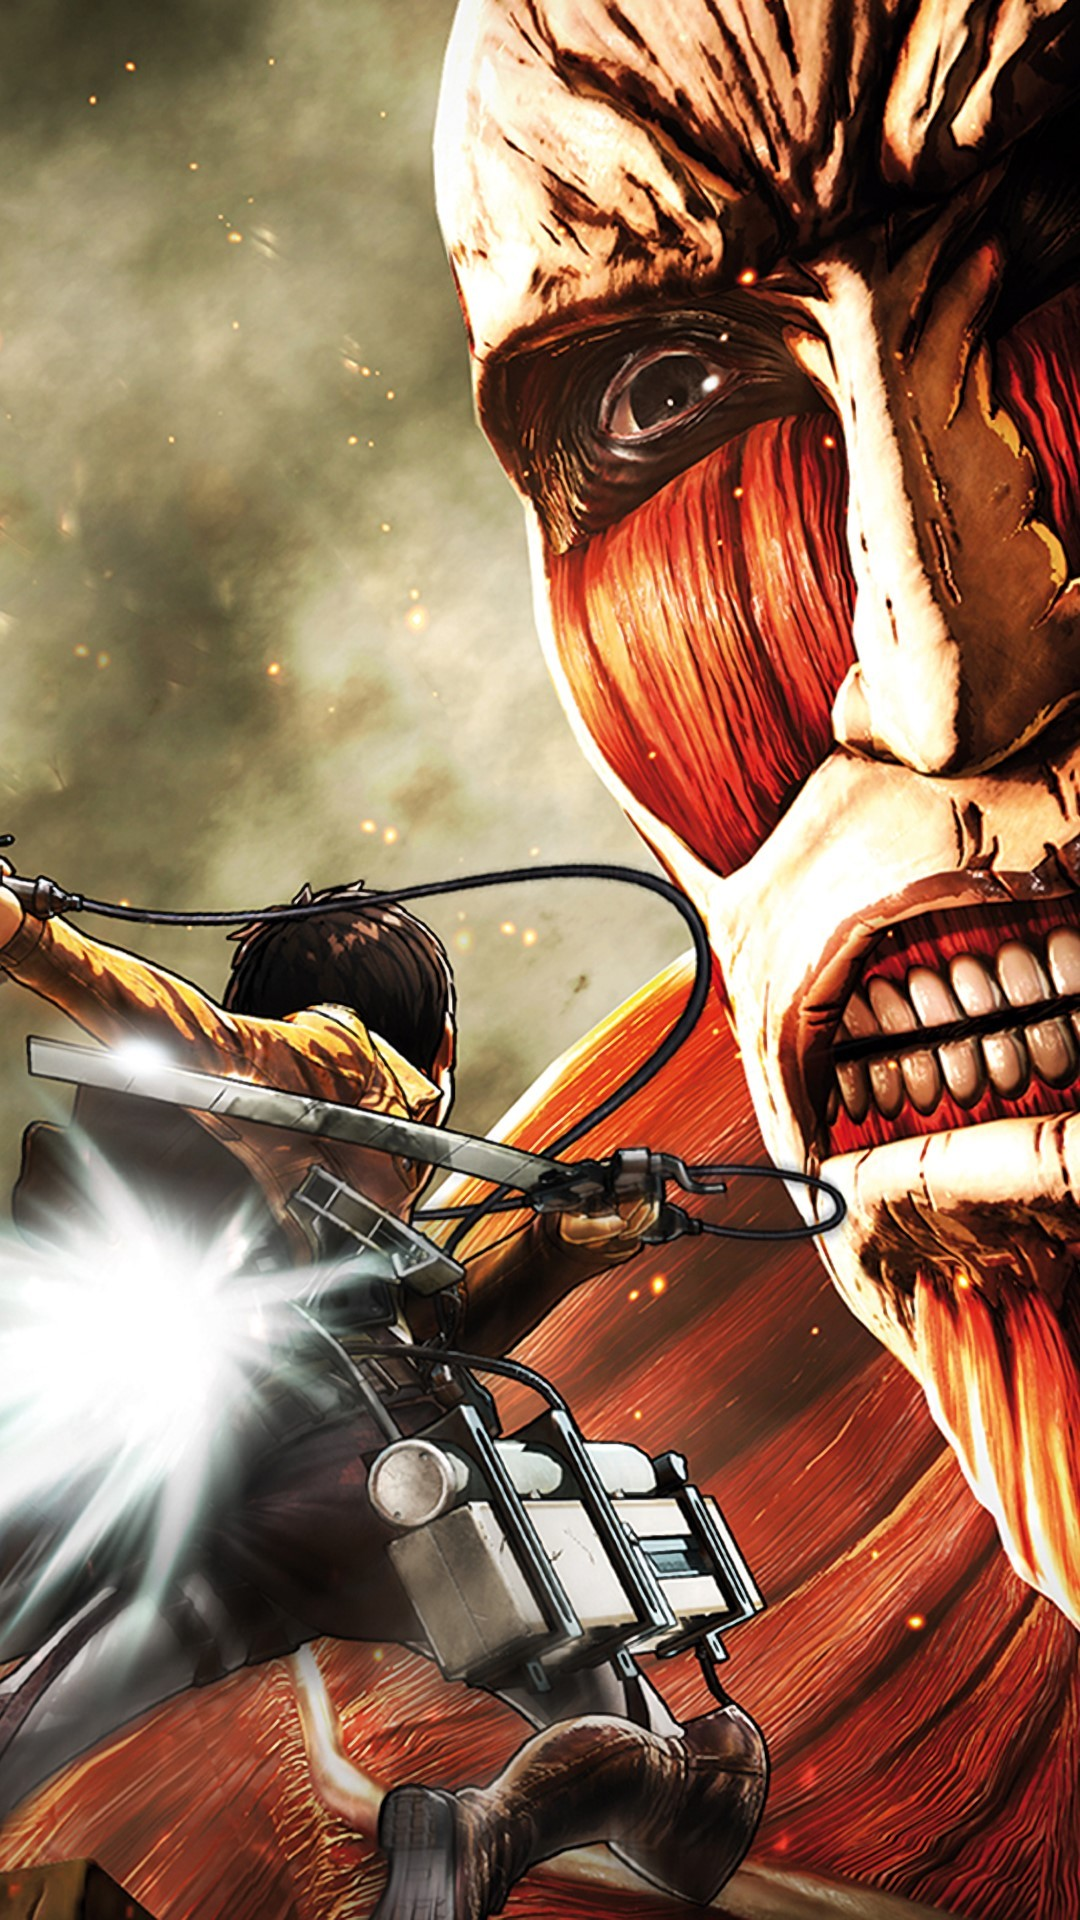 Attack On Titan Wallpapers Kolpaper Awesome Free Hd Wallpapers